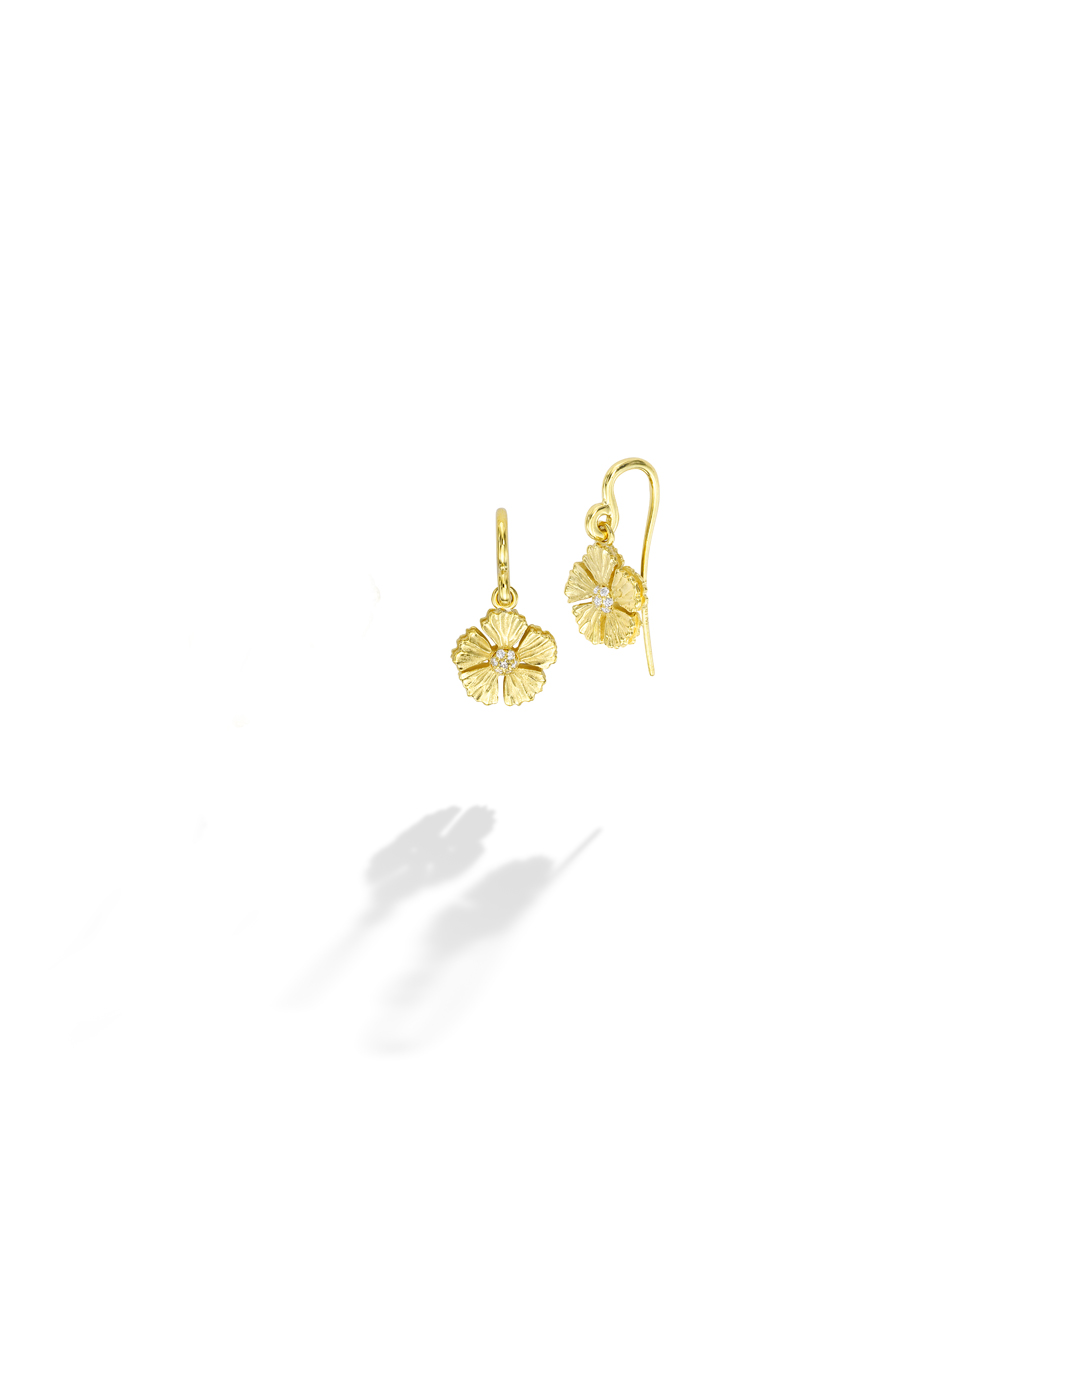 mish_products_earrings_Strawberry-FW MED Diam-ER-1